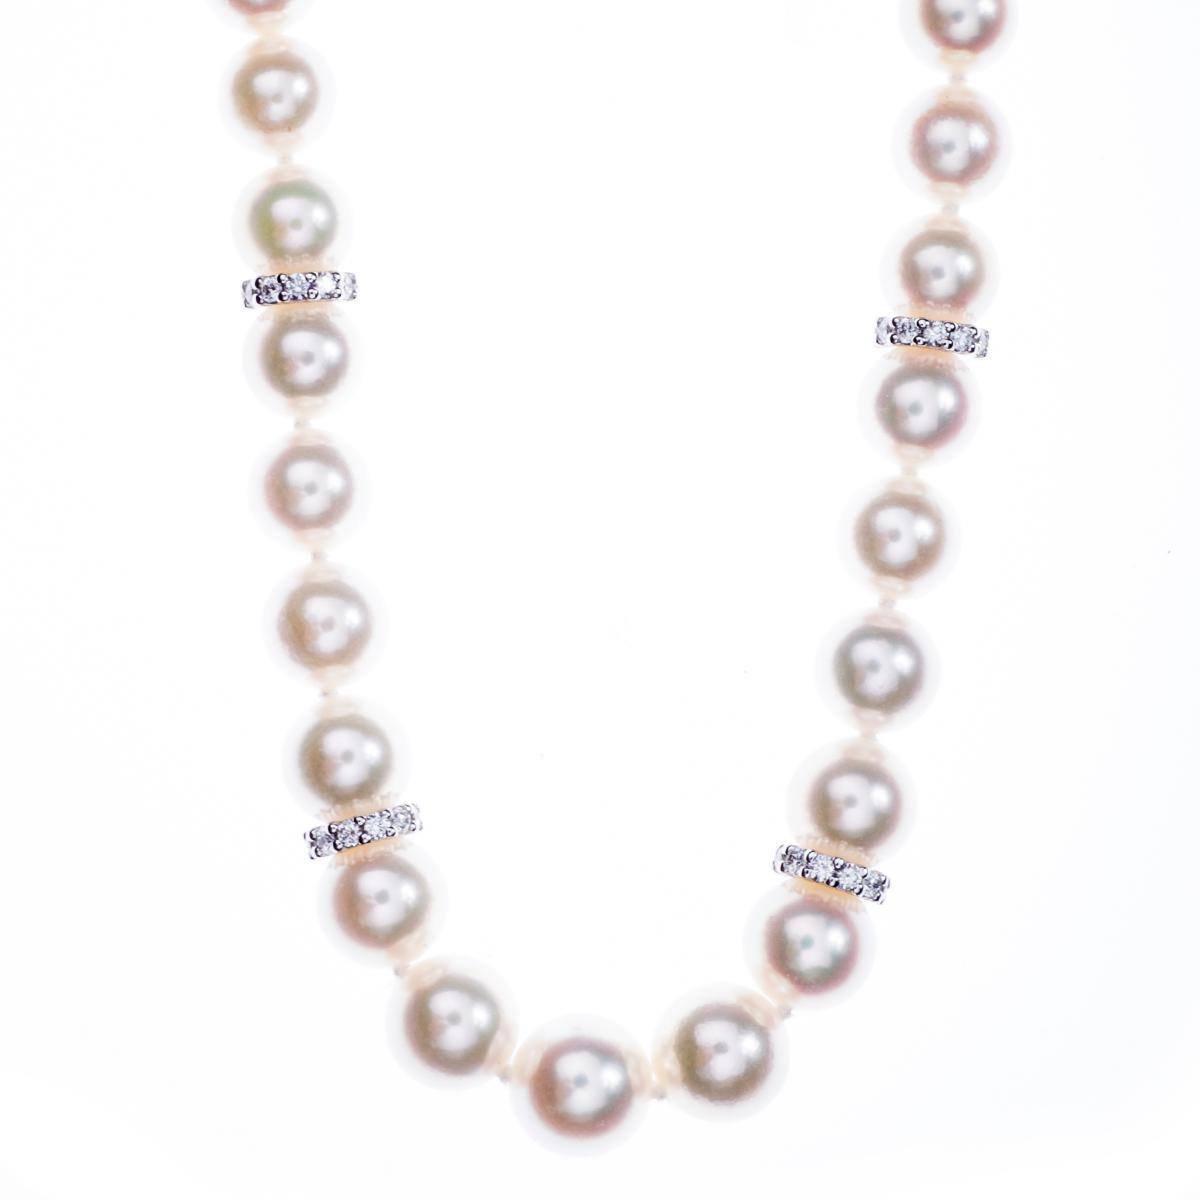 Vintage Mikimoto Pearl Necklace with Diamond Rondelles